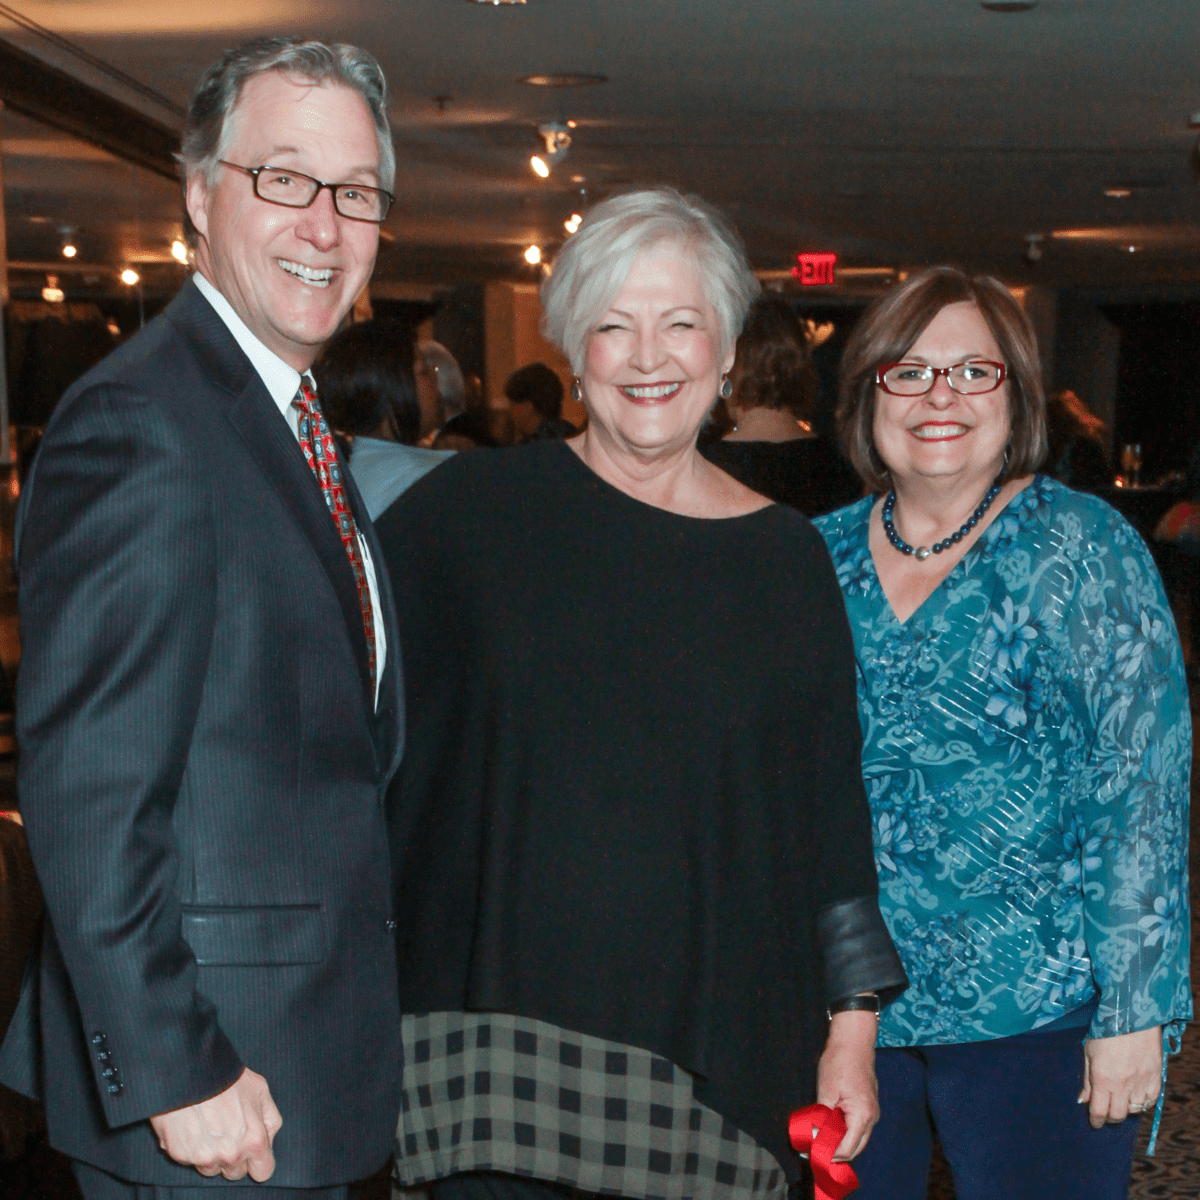 Steven Costello, Shari Koziel, Debbie Costello at Interfaith Ministries brunch